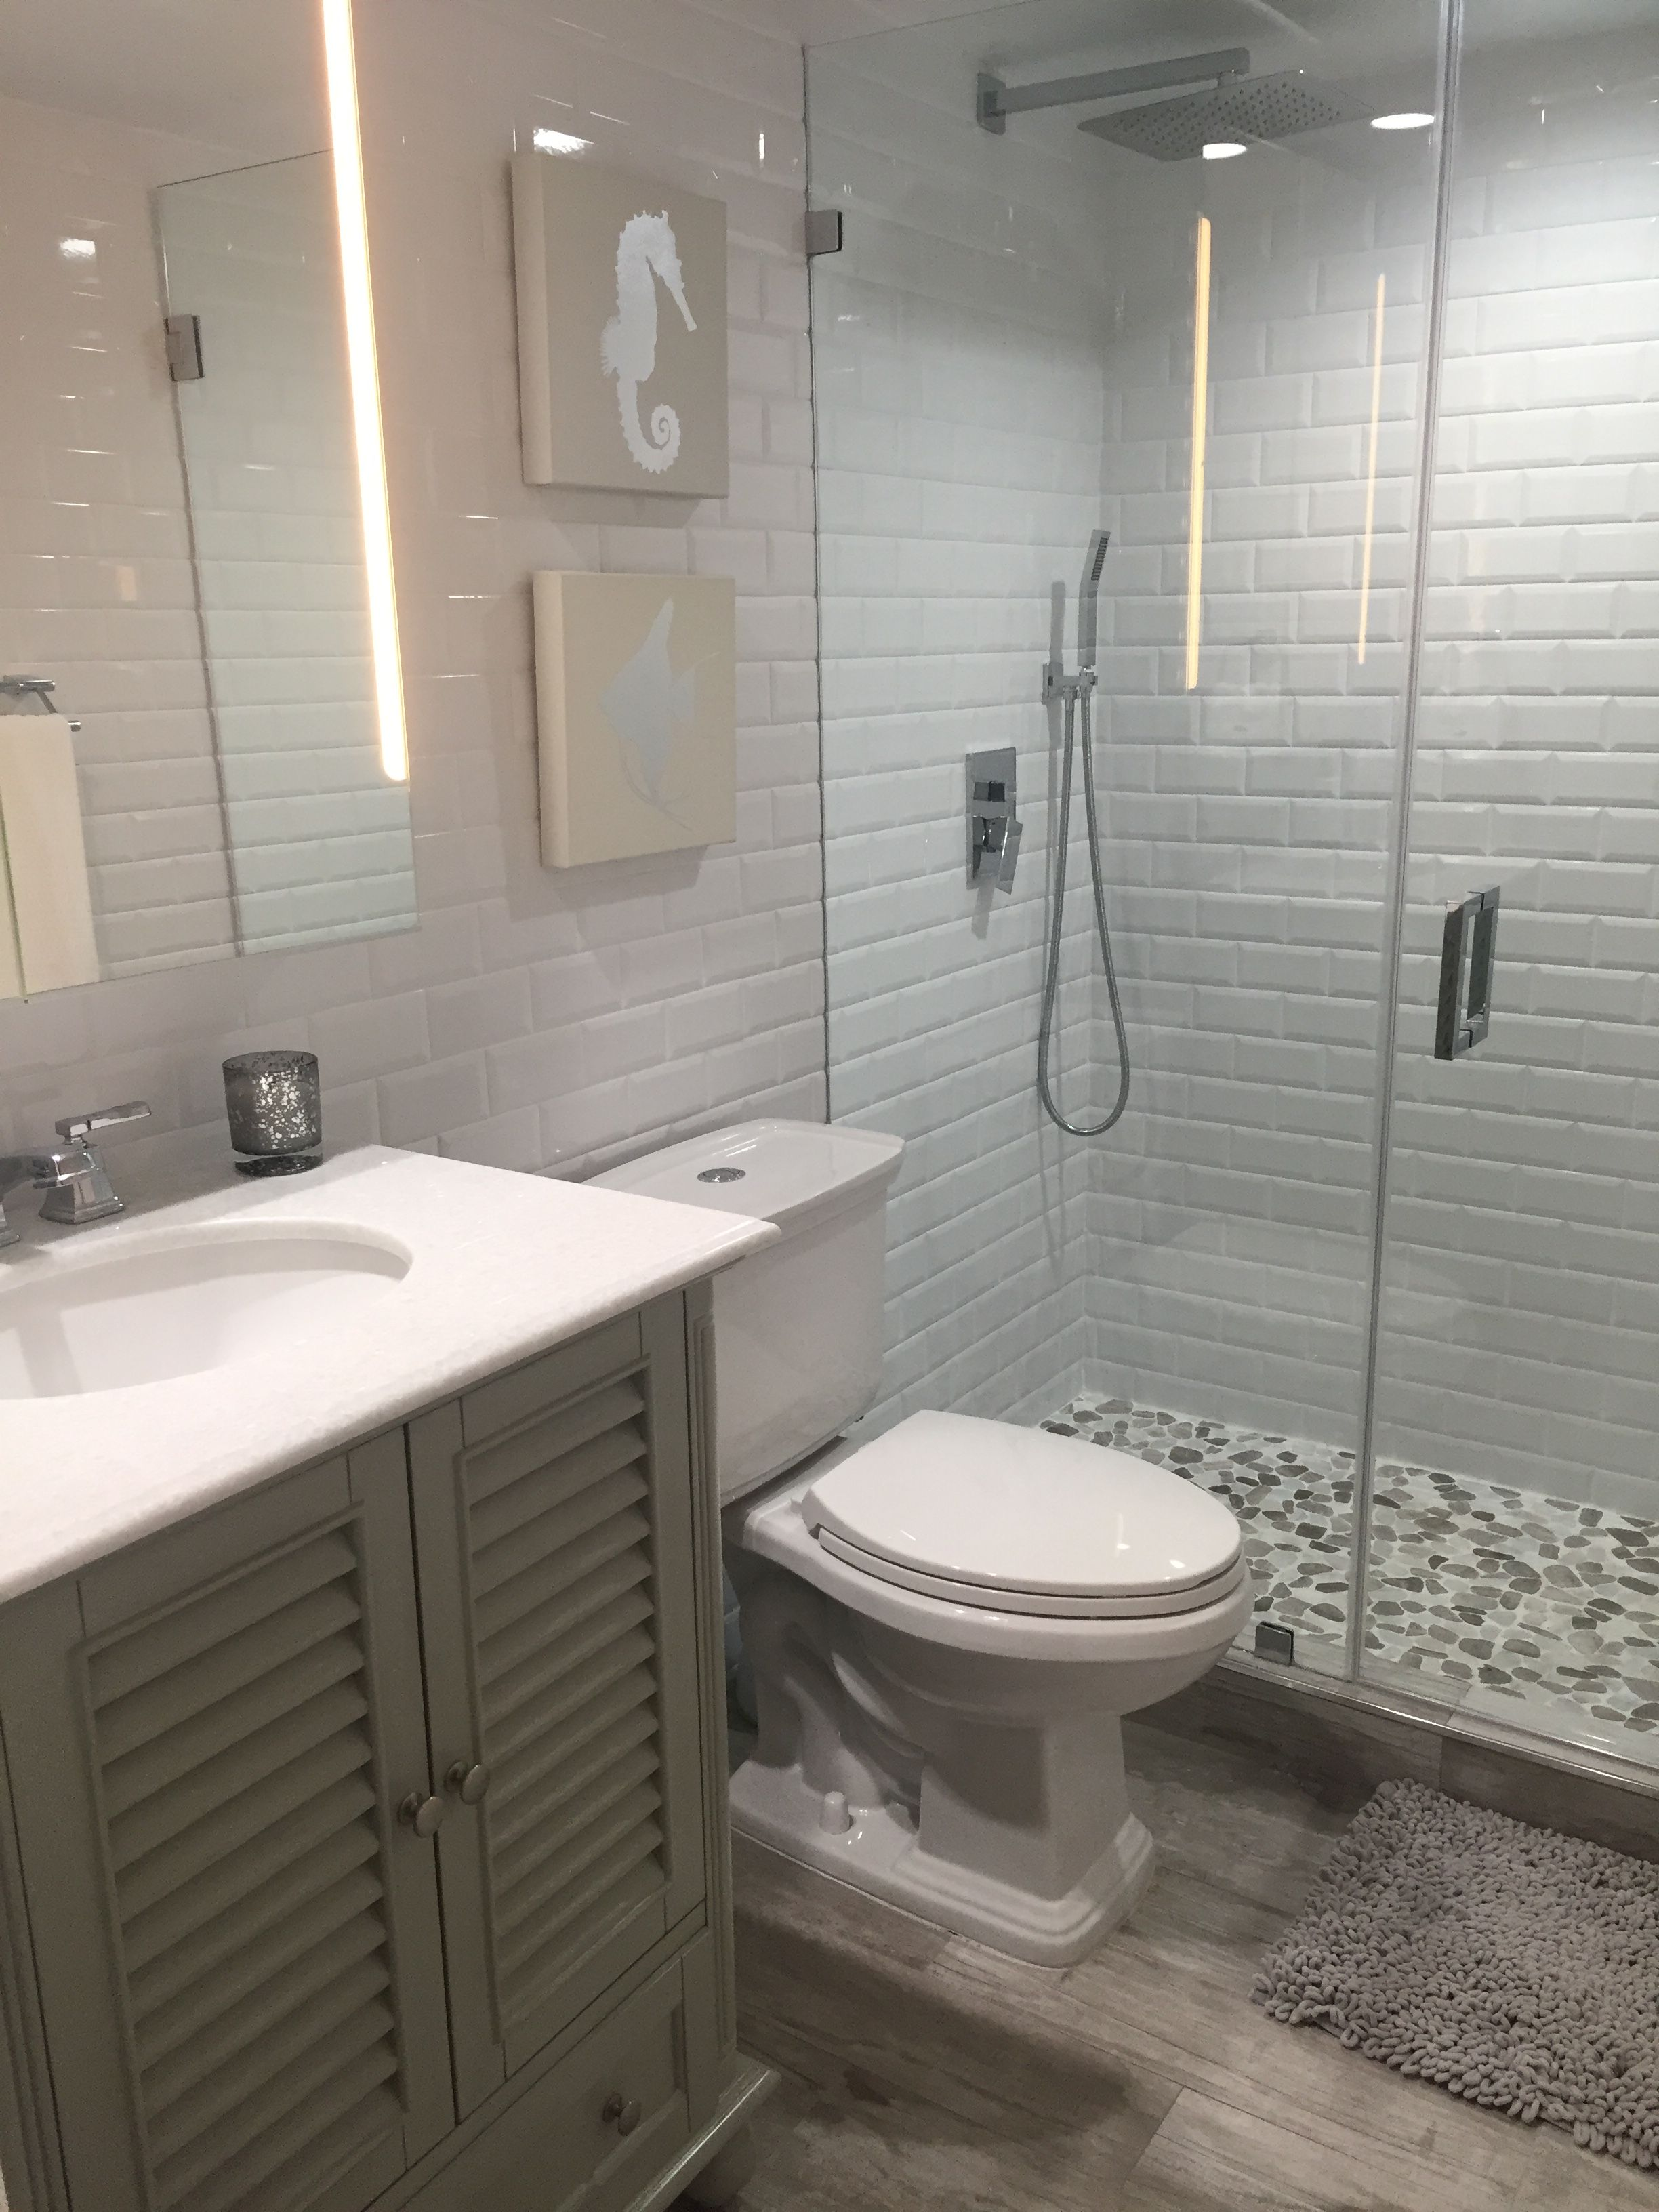 Tulsa bathroom remodel contractors, Tulsa bathroom remodeling, Tulsa bathroom remodeling quote.